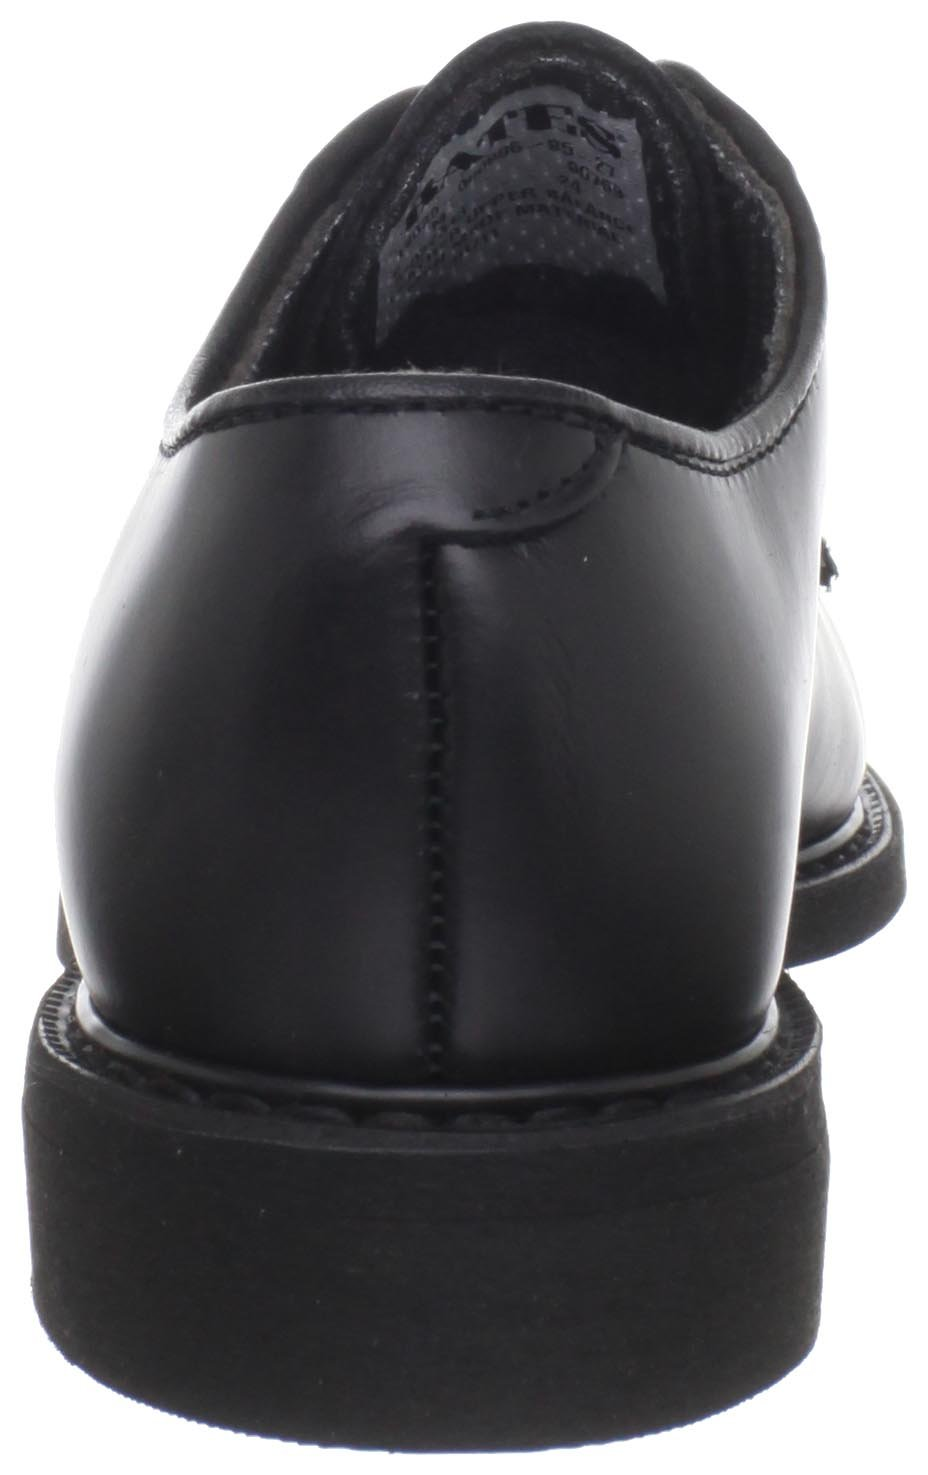 Bates Women's Leather Uniform Shoe B000G5Z7M0 8 M US|Black